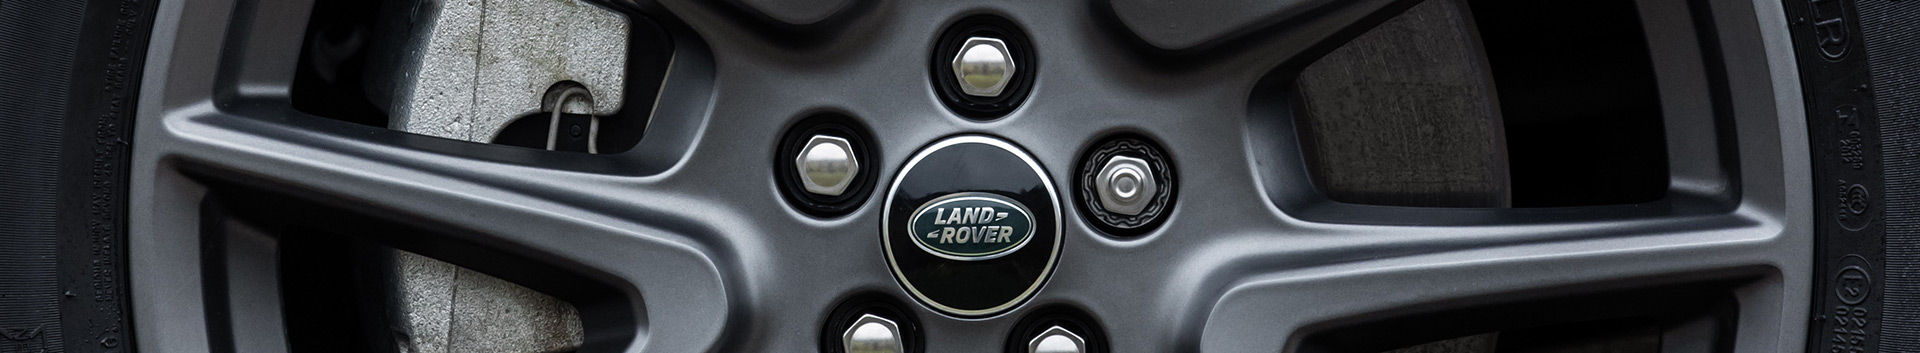 Landrover Huntclub Rise To The Occasion Header